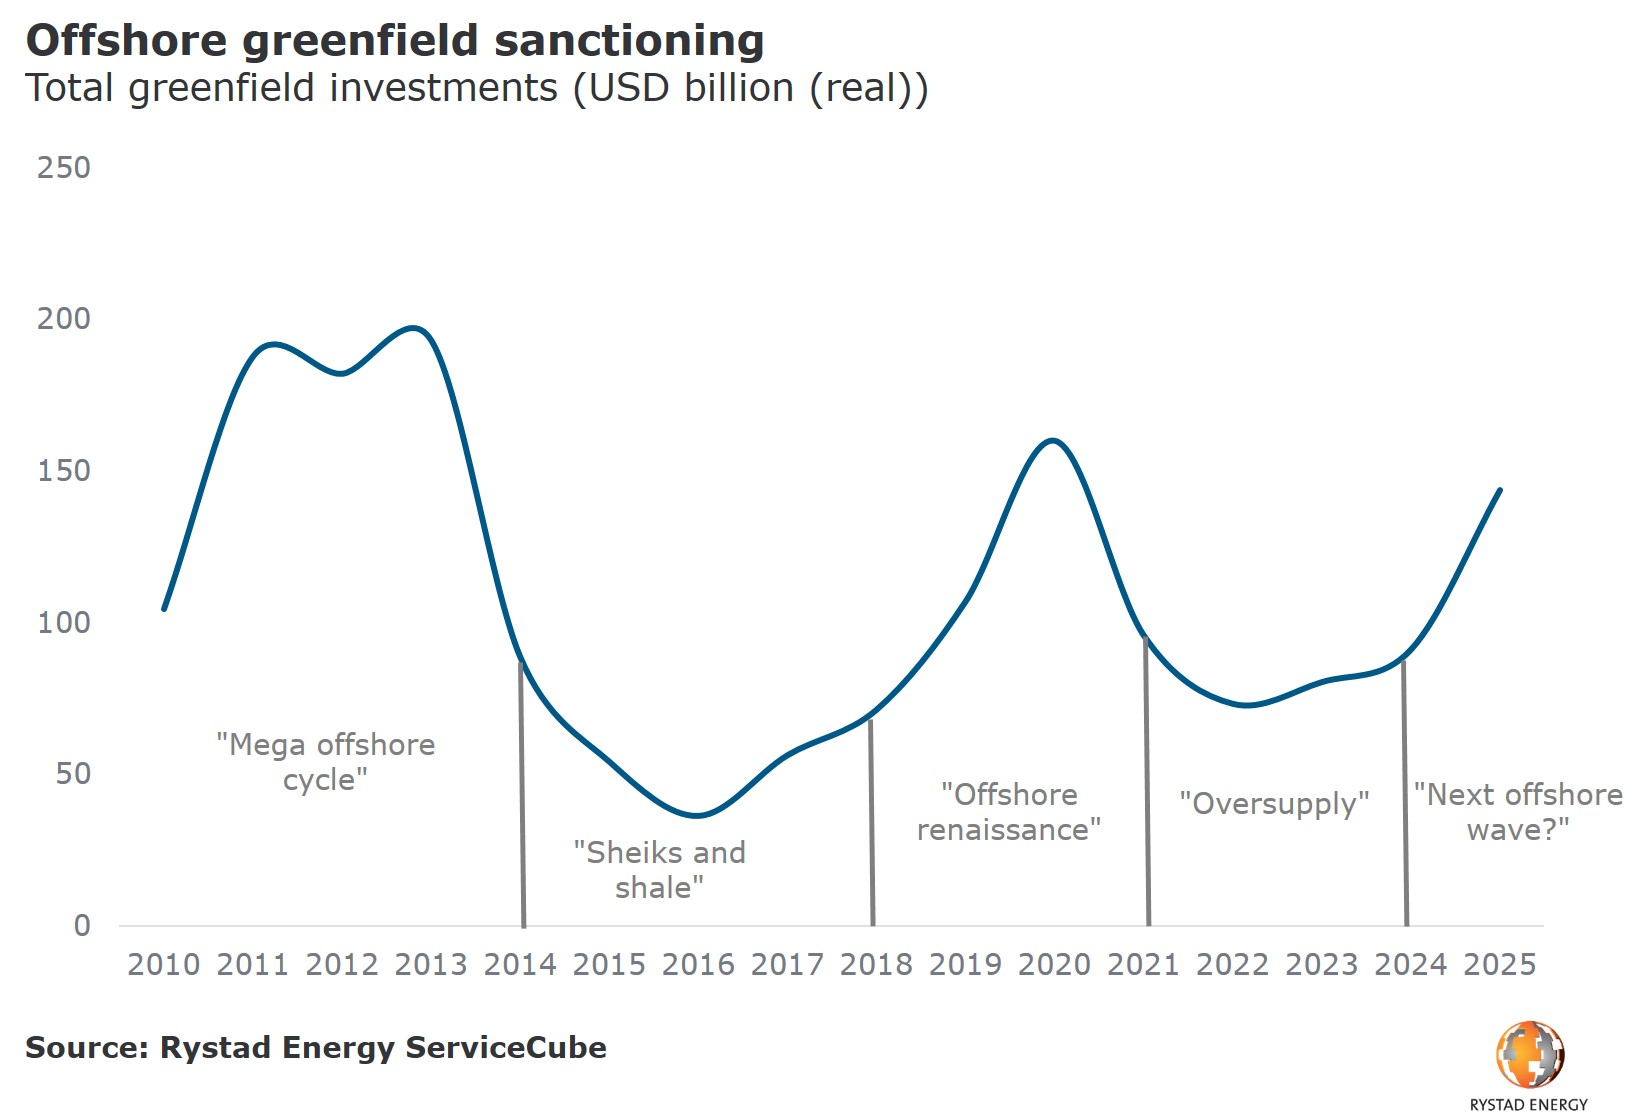 20190513_PR chart offshore greenfield sanctioning.jpg